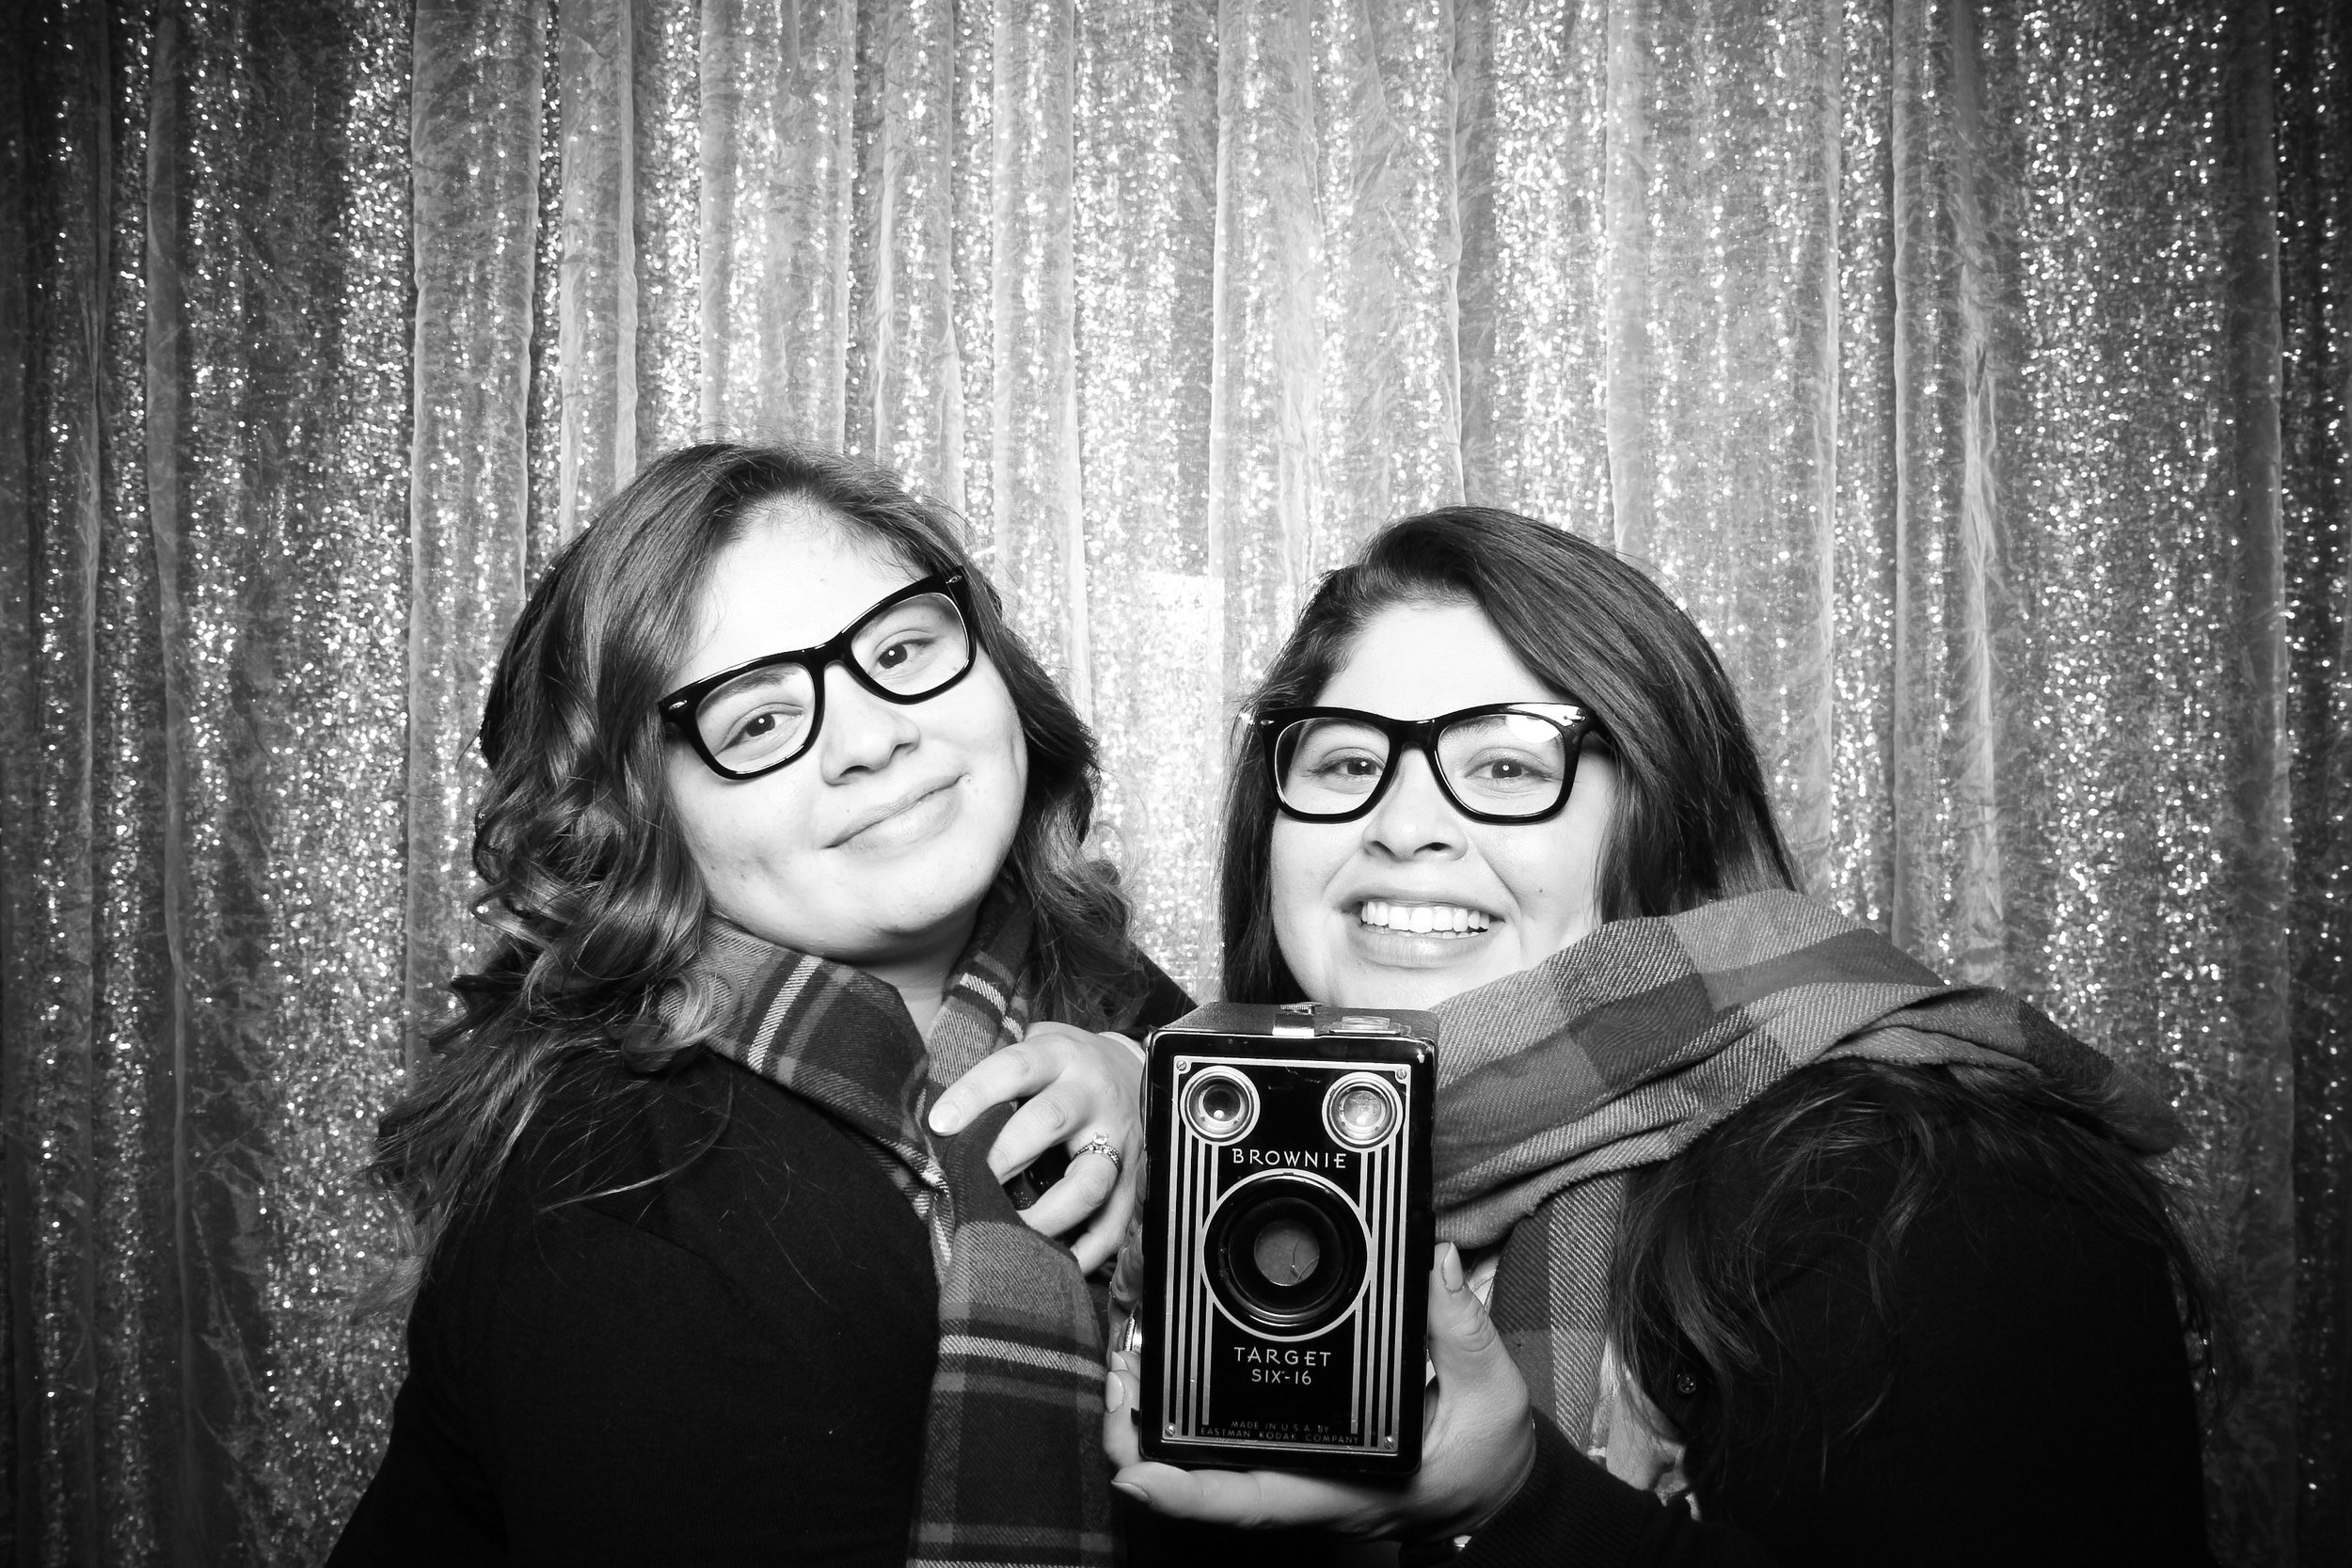 Chicago_Vintage_Photobooth_Montgomery_Club_Holiday_Party_08.jpg